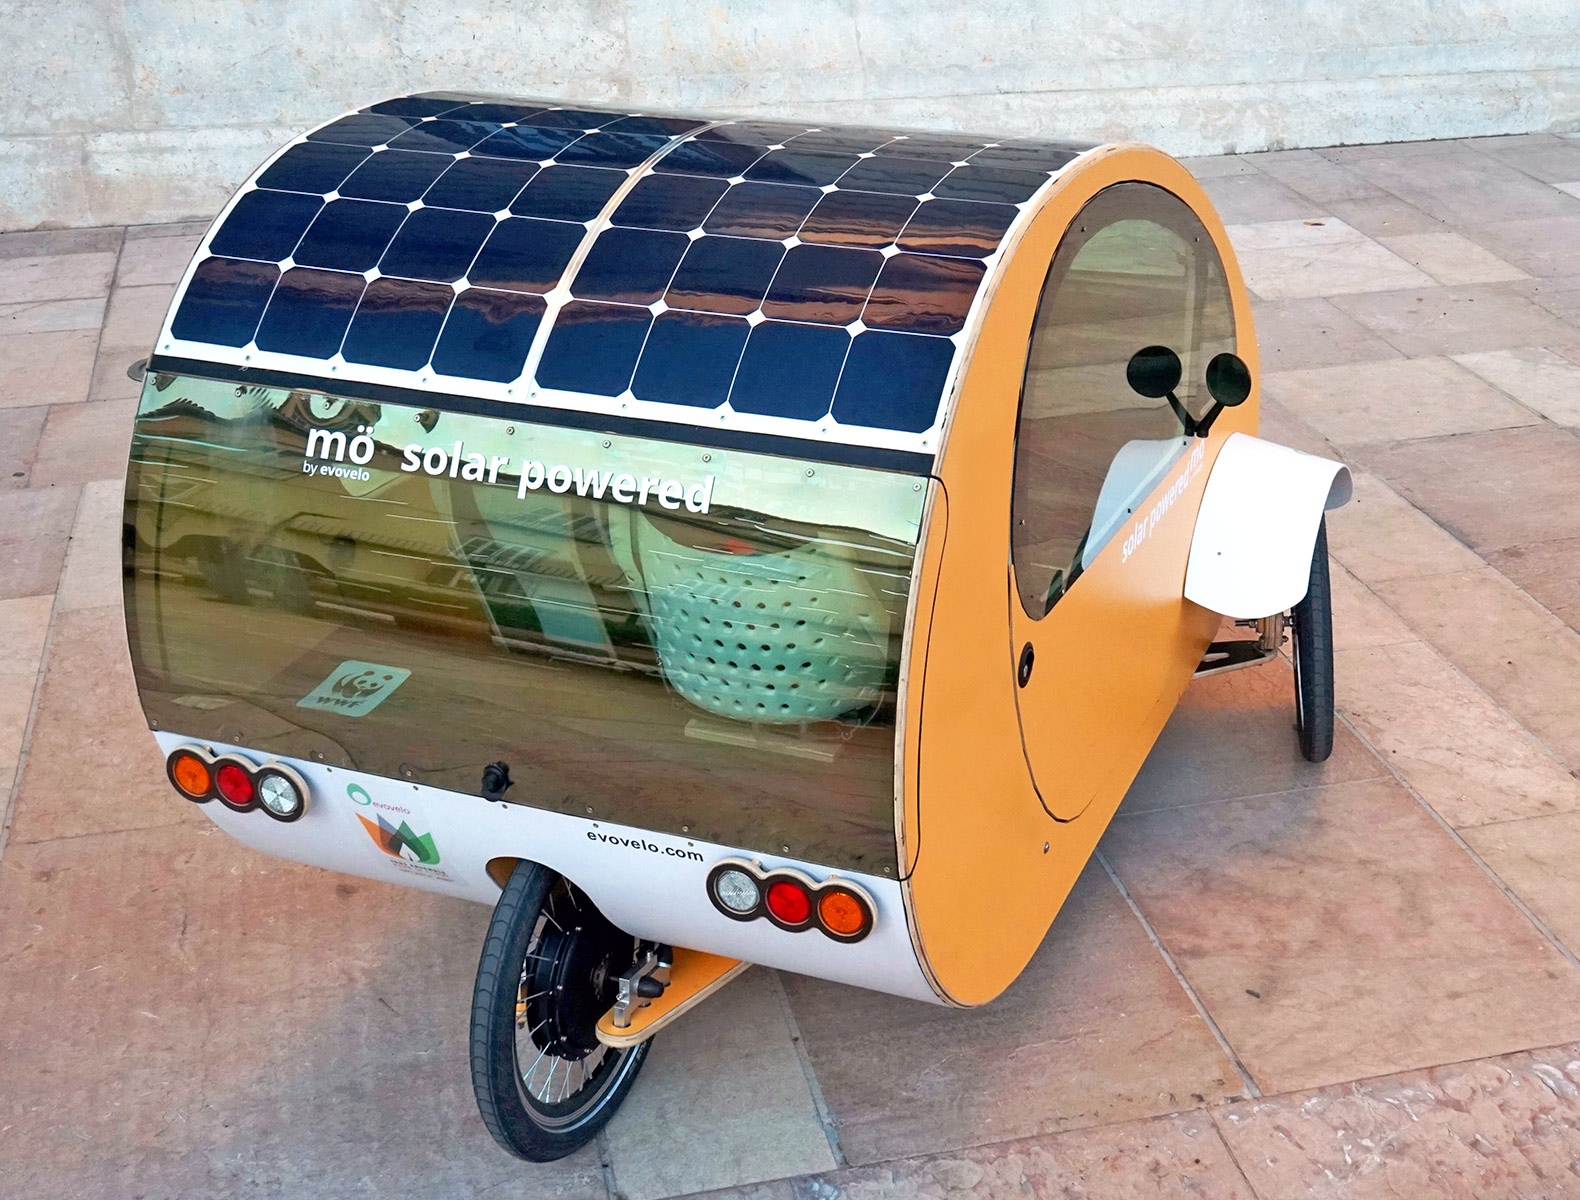 Evovelo unveils cute little solar car you can pedal like a bicycle